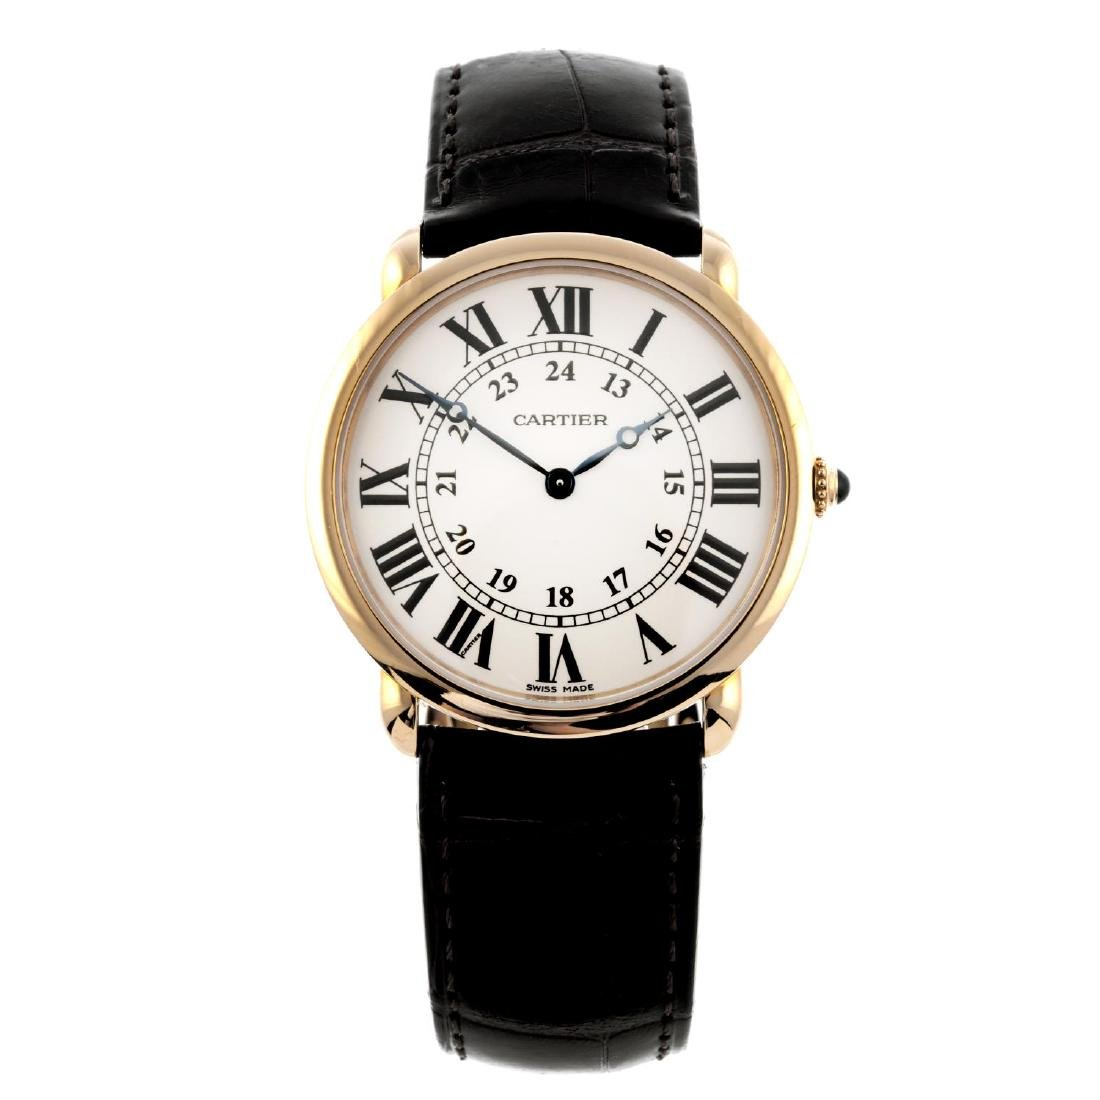 CARTIER - a Ronde Louis Cartier wrist watch. 18ct rose